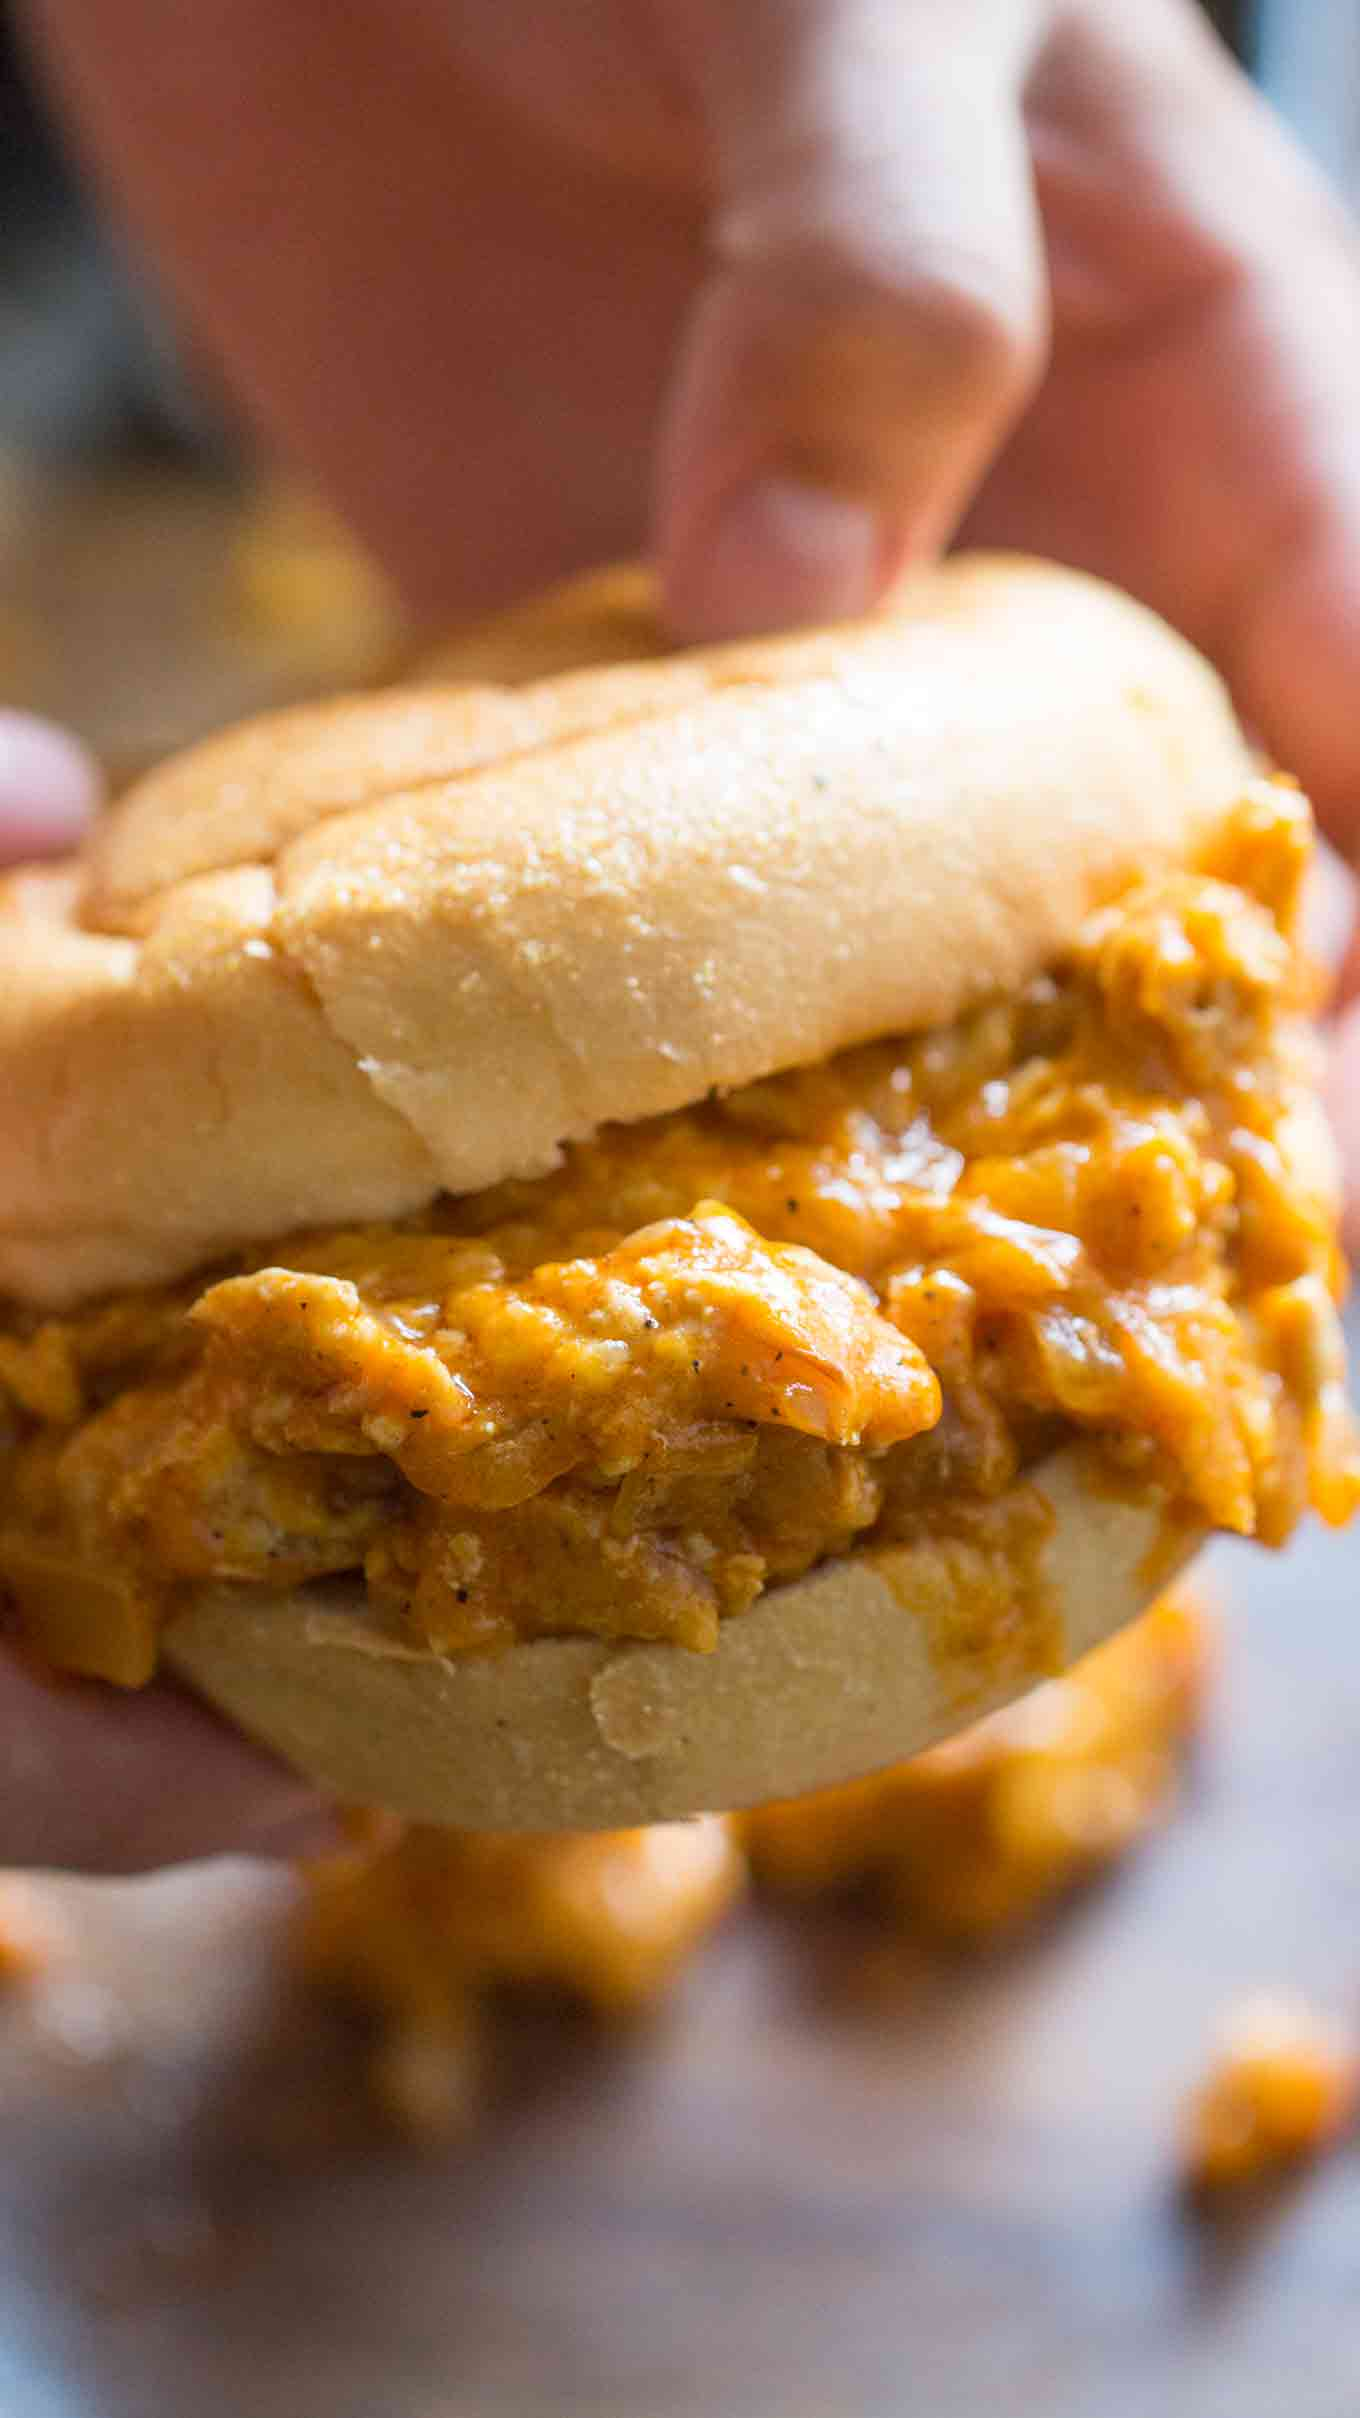 Buffalo Chicken Sloppy Joes made with just a few ingredients in one pan in just 30 minutes, are cheesy and perfectly hot.